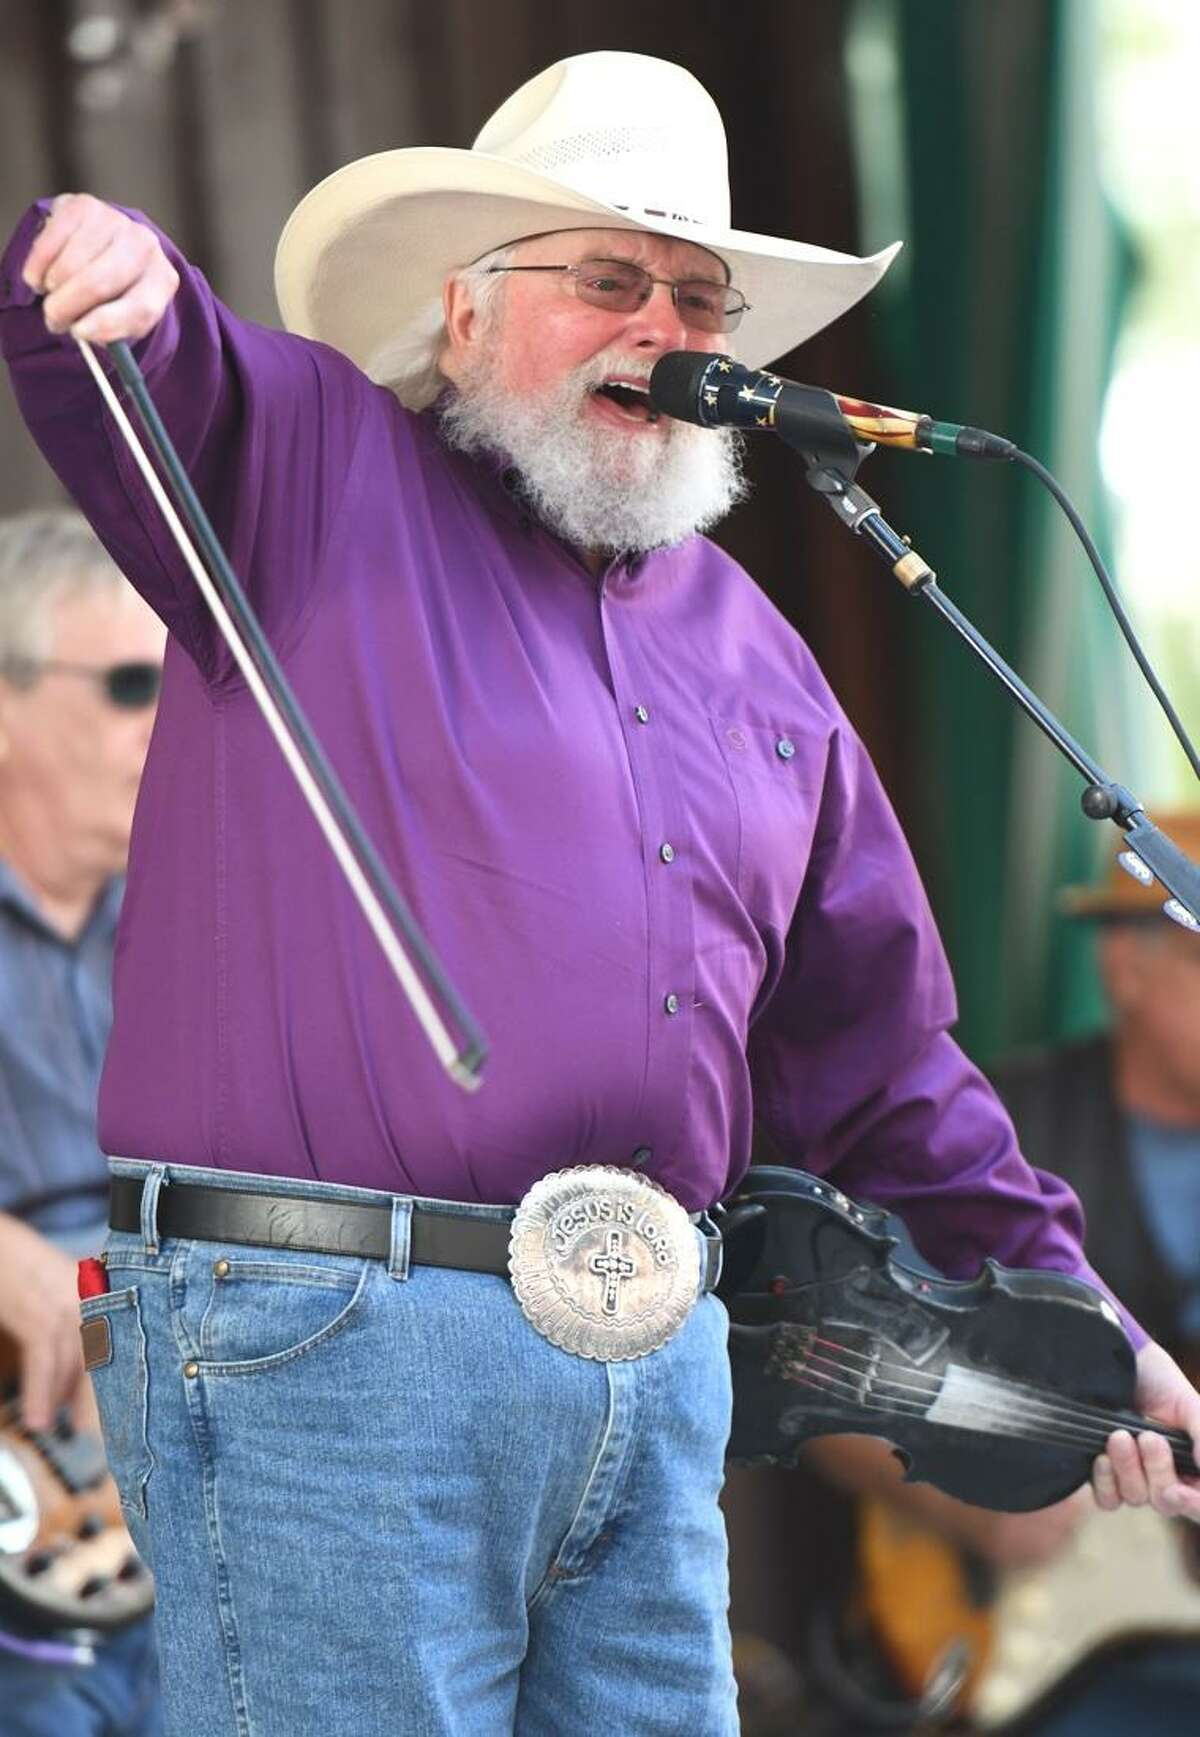 """Singer, songwriter and multi-instrumentalist, Charlie Daniels is shown in action during his recent performance at the Indian Ranch Amphitheater in Webster, Massachusetts on Sept. 9. The 80-year old musician, perhaps best known for his number one country hit ?""""The Devil Went Down To Georgia,?"""" has been an active singer, musician and touring artist since the 1950?'s. He was inducted into the Grand Ole Opry on Jan. 24, 2008and the ?""""Musicians Hall of Fame and Museum?"""" in 2009. Daniels was inducted into the ?""""Country Music Hall"""" of Fame in 2016. To learn more about the CDB 45th Anniversary Fiddle Sweepstakes, visit www.charliedaniels.com"""